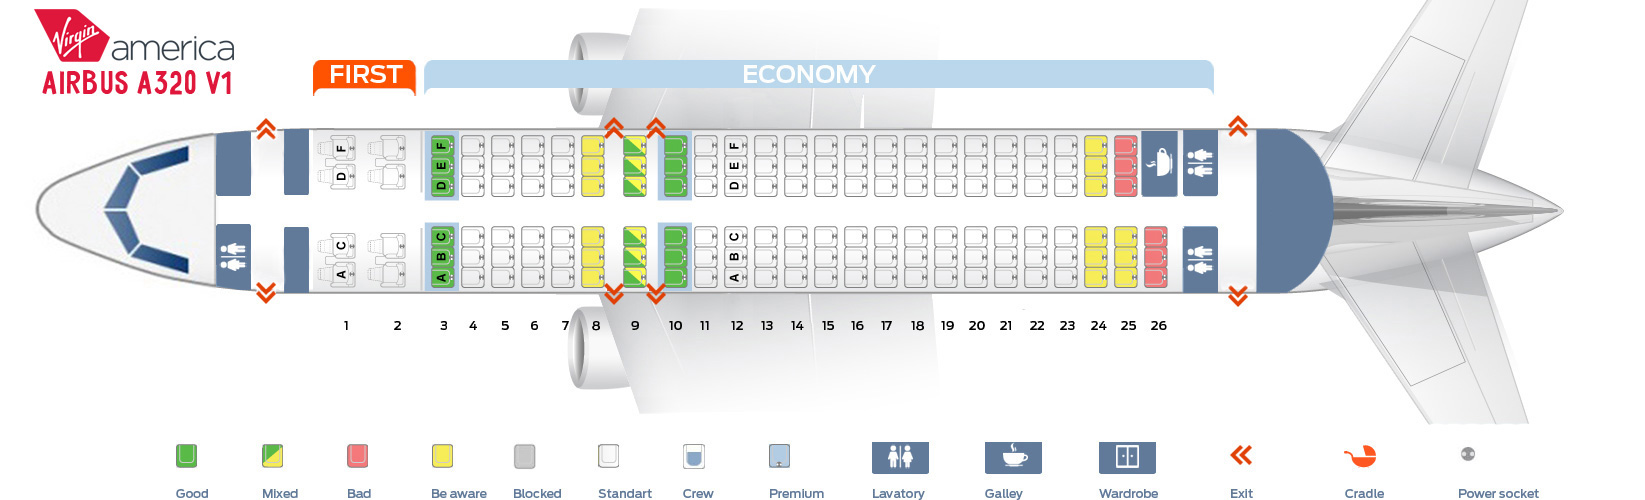 Seat map Airbus A320 version 1 Virgin America